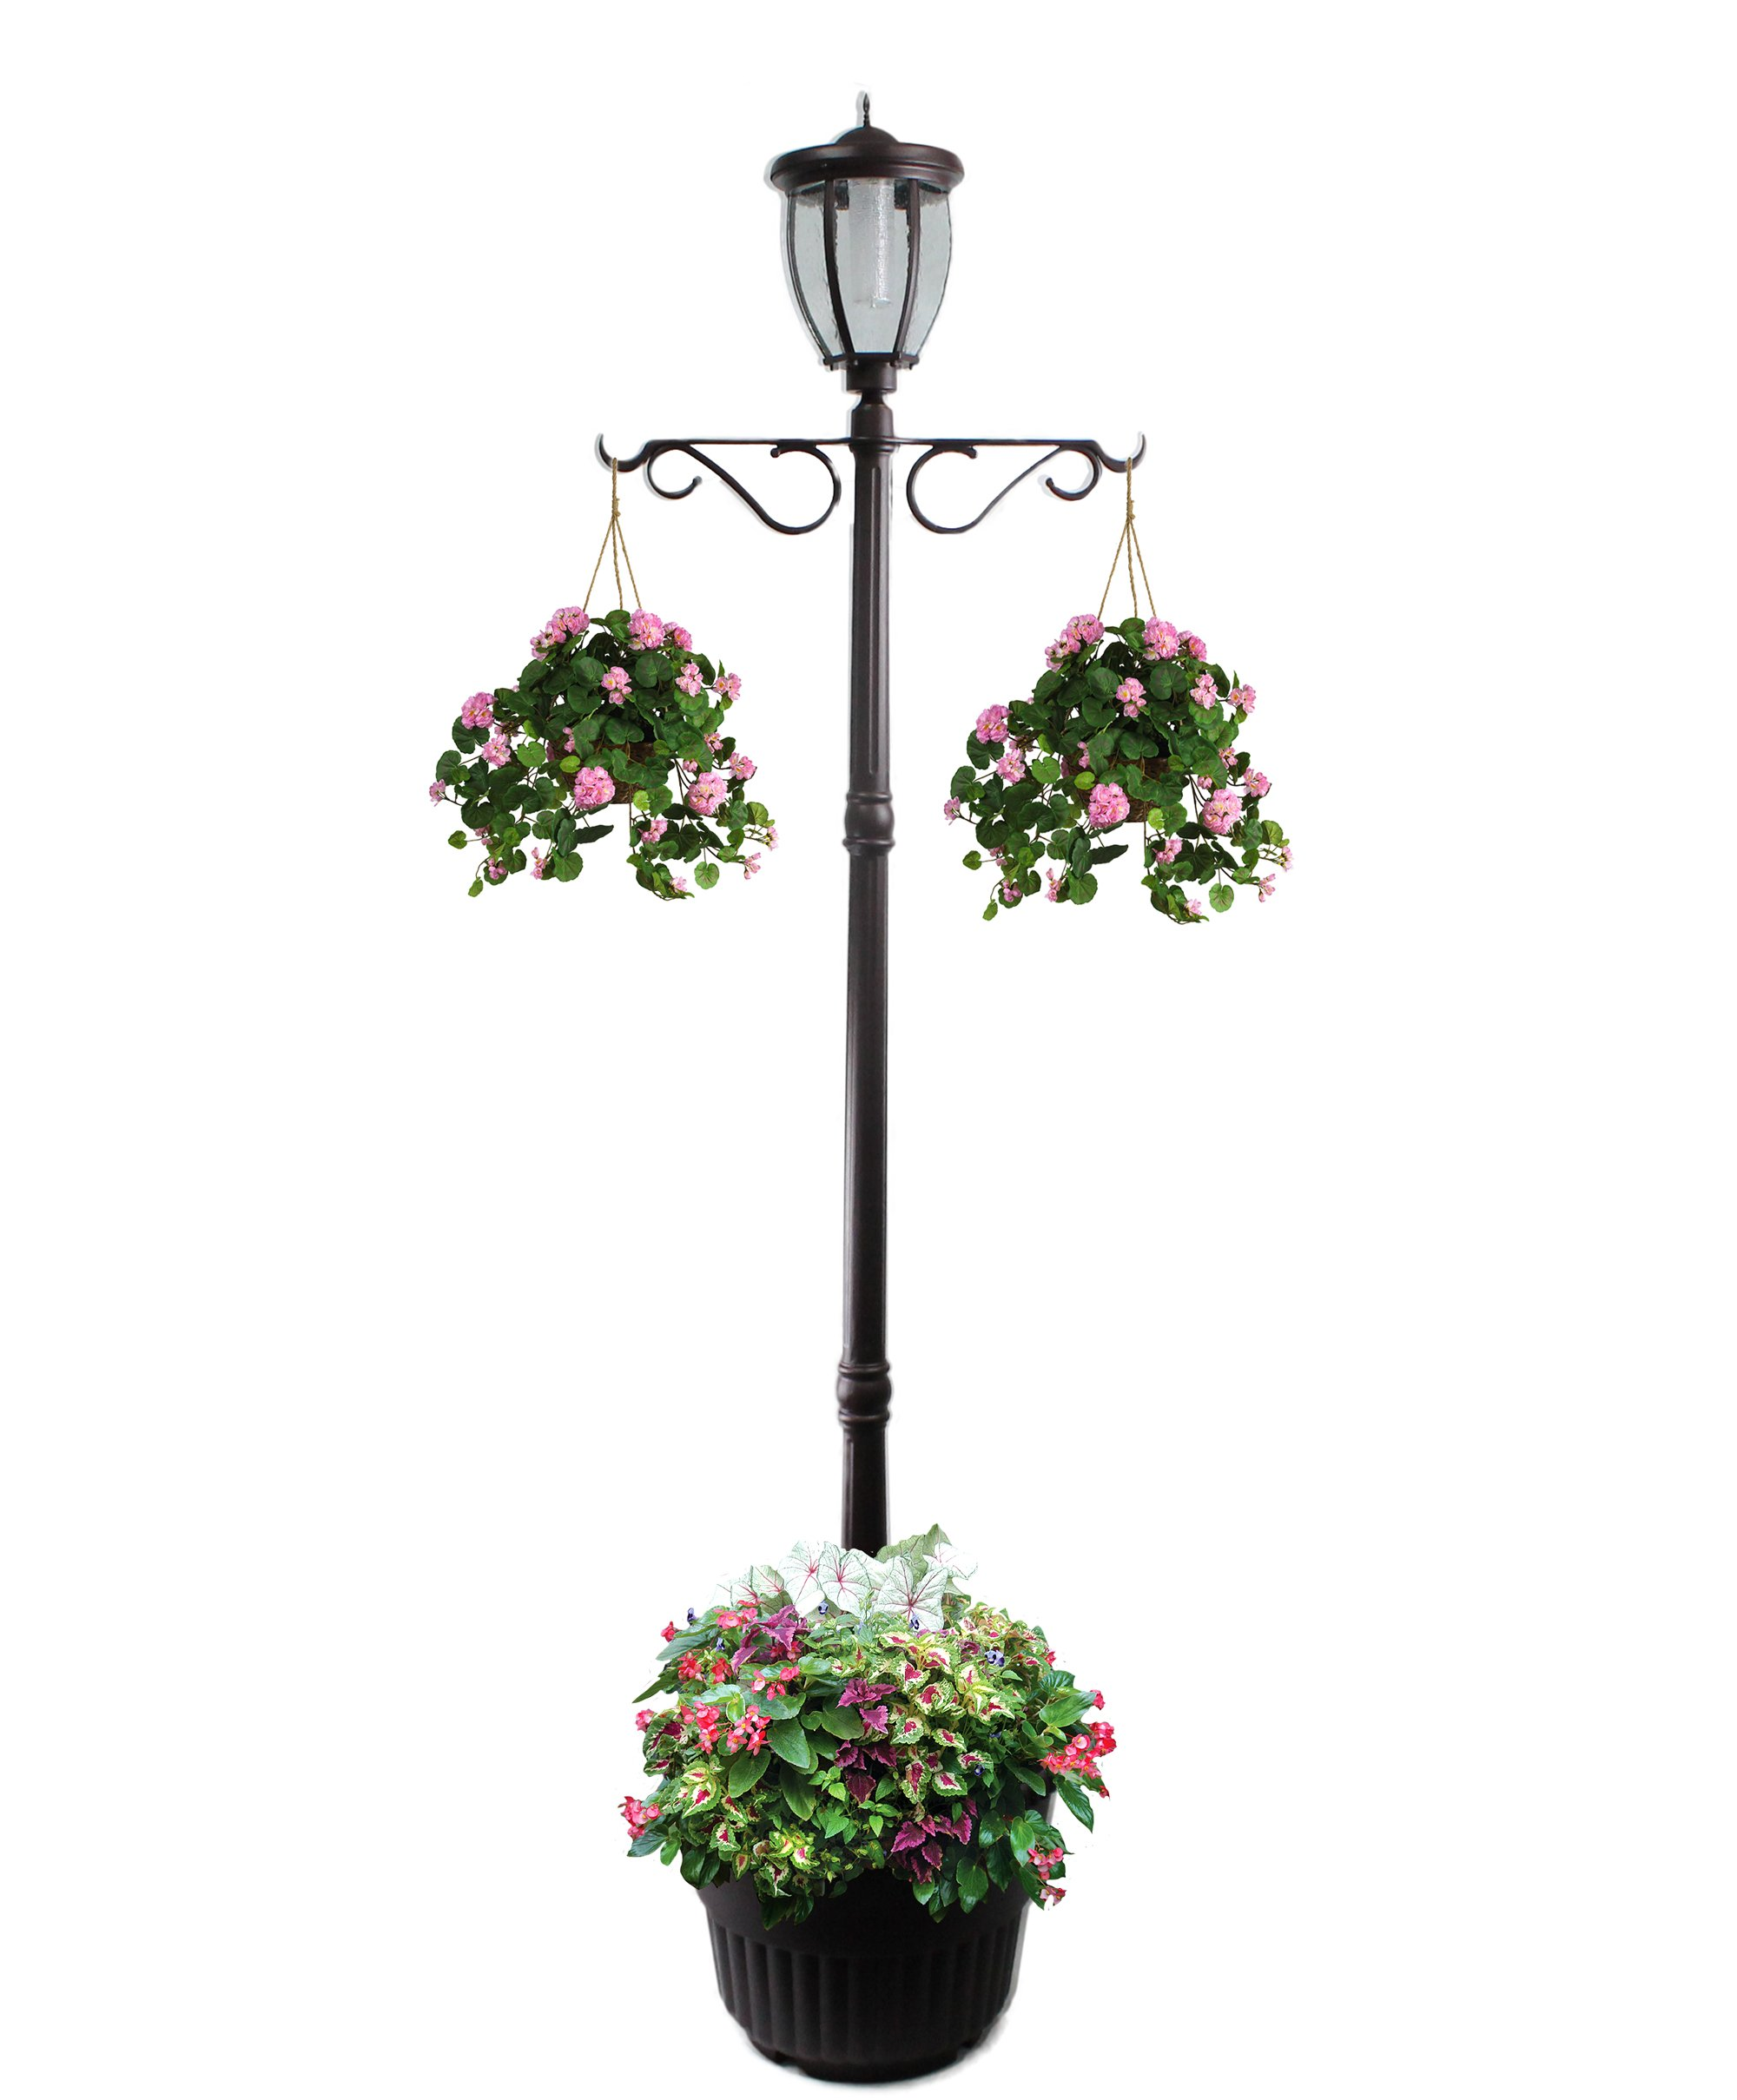 7' Tall Kenwick Solar Lamp Post and Planter with Plants Hanger, Amber and White LEDs, Brown, Outdoor Lighting